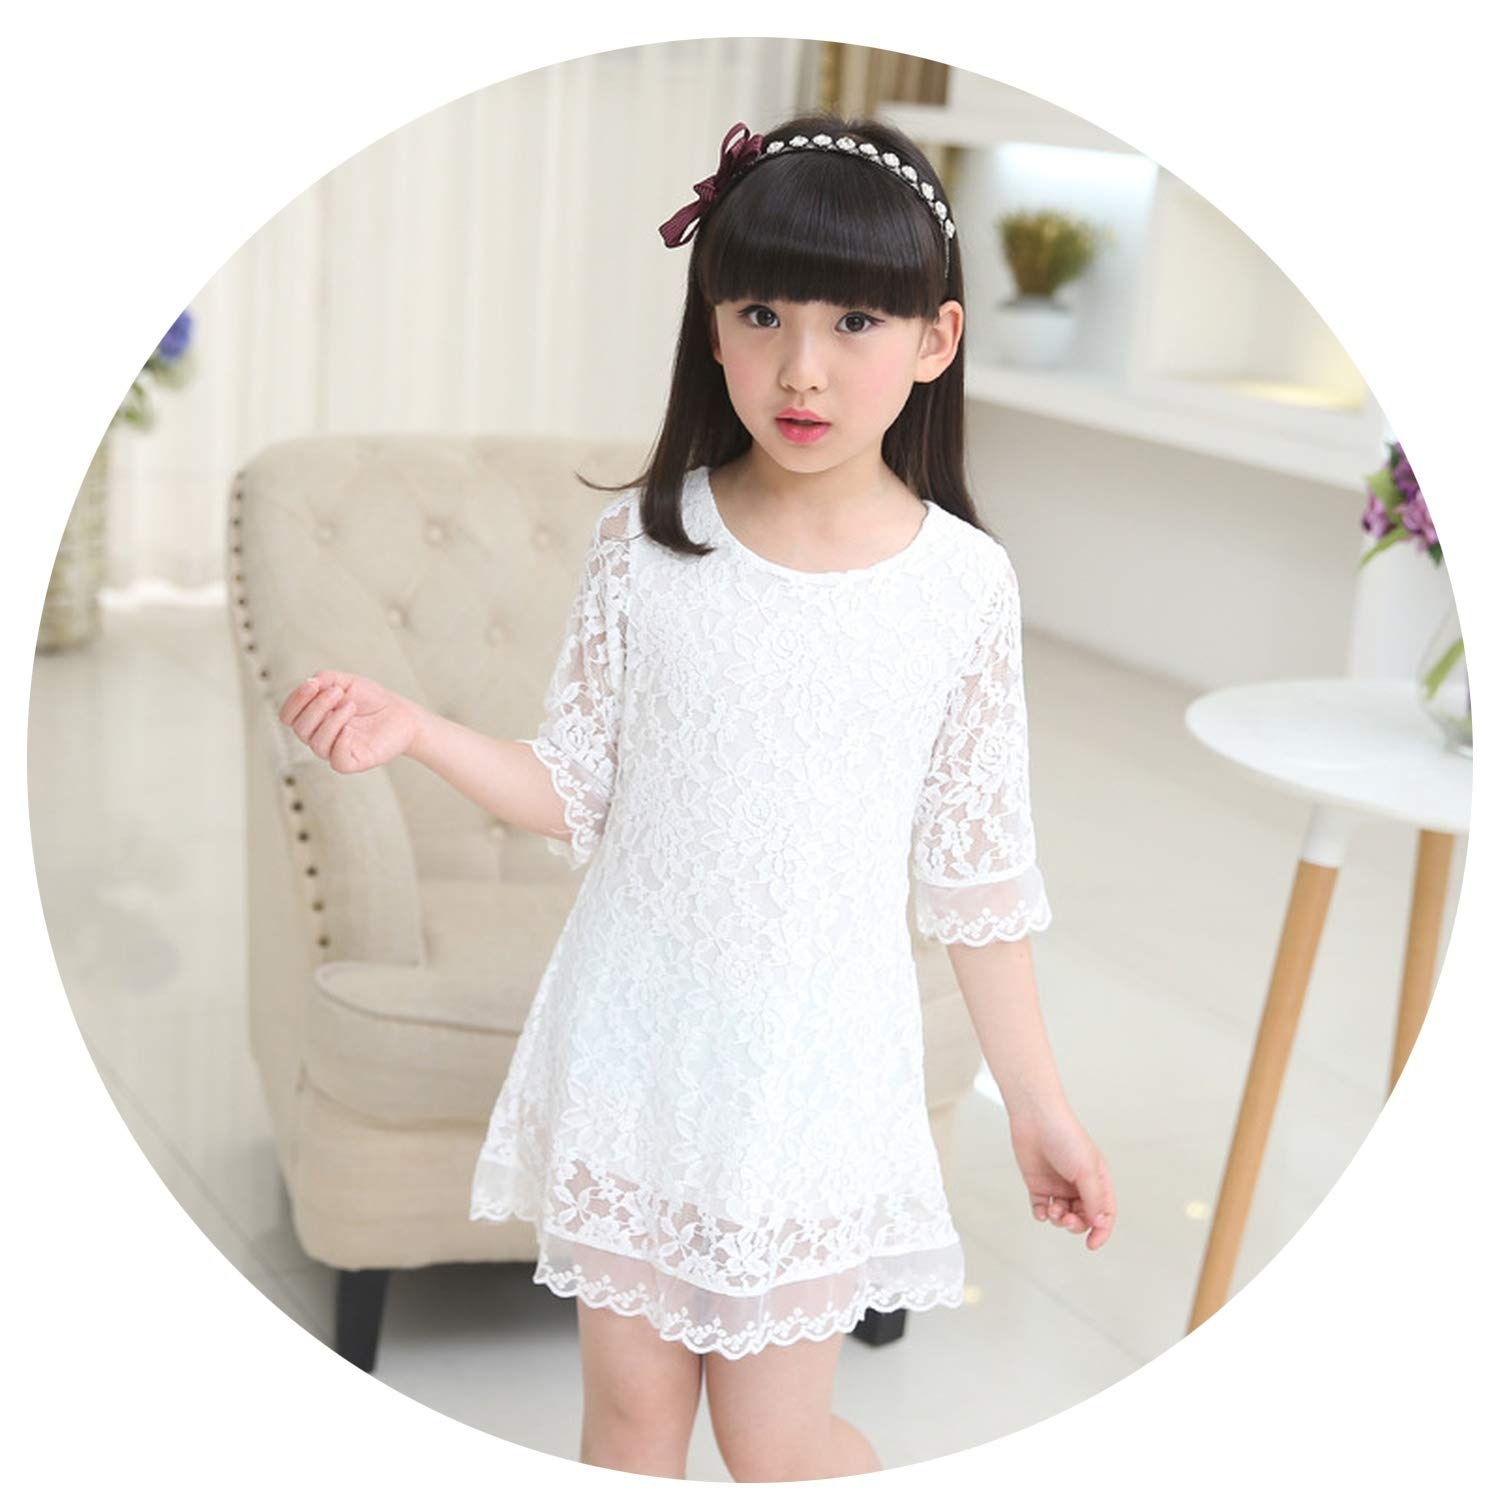 Kids 2018 Summer Autumn Lace Dress White Large Size Girls Dress Princess 3 4 6 8 10 12 14 16 18 Years Old Baby Girl,White,7 by Gooding Day (Image #1)